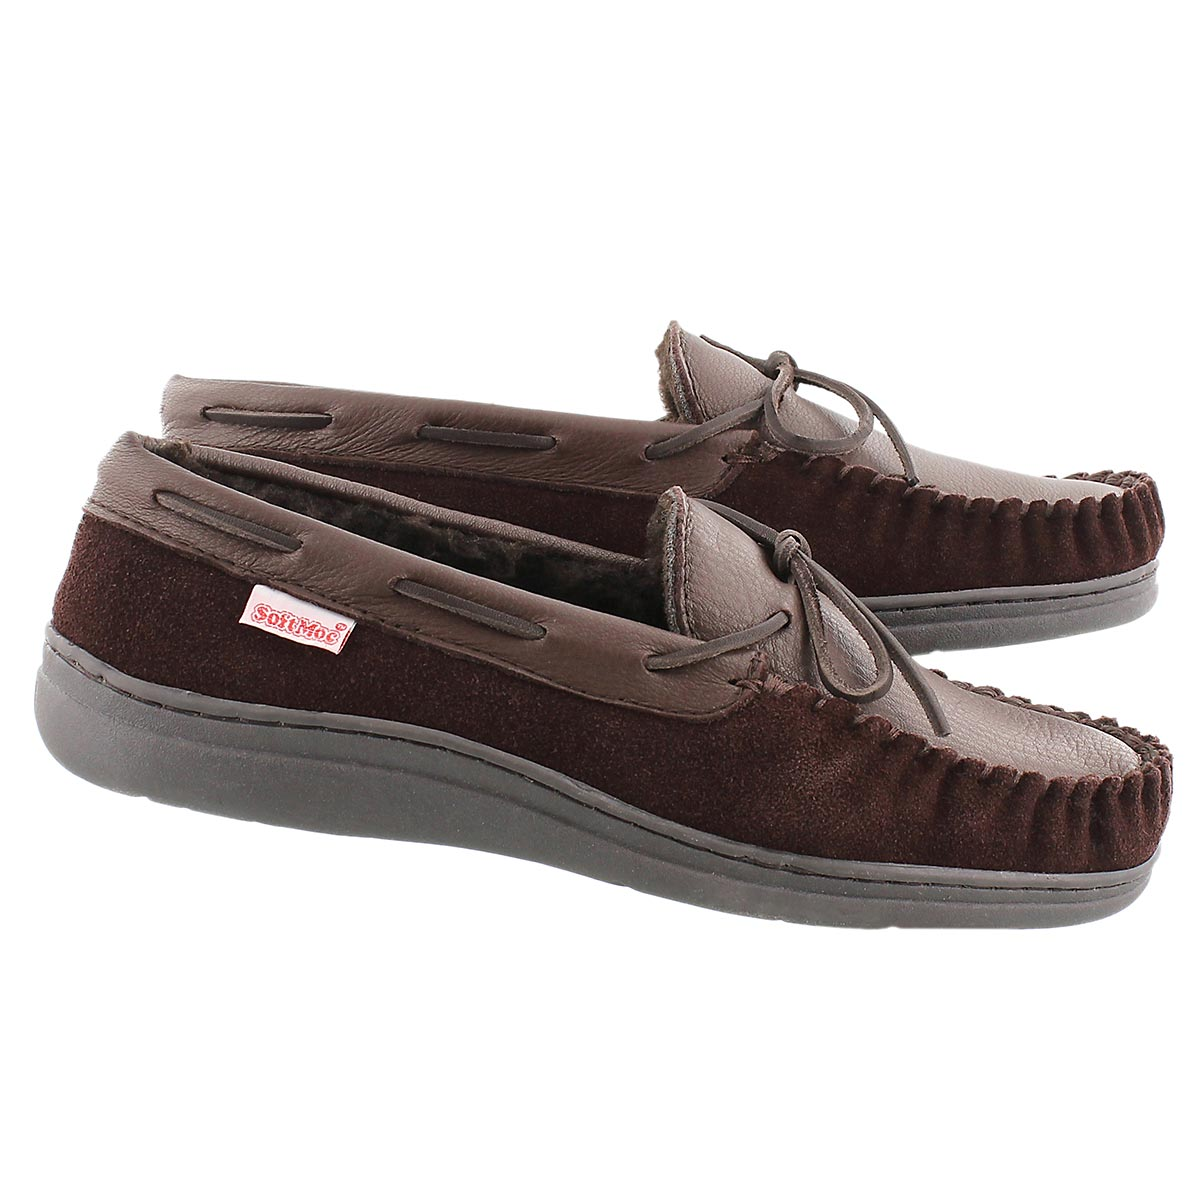 Mns Dalton dark brown lined leather mocc